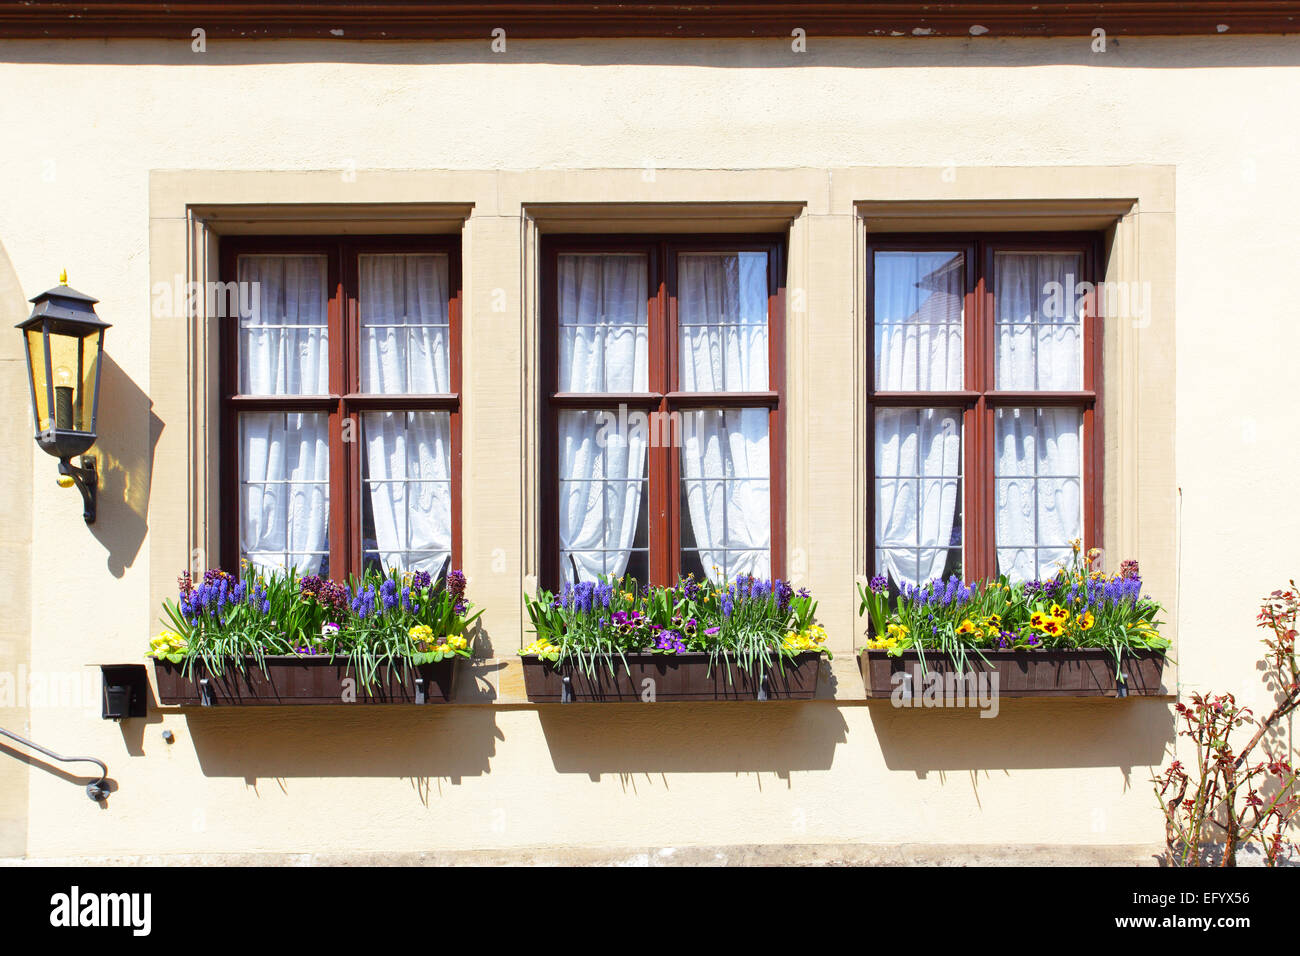 Windows of old house with flowers, Germany - Stock Image